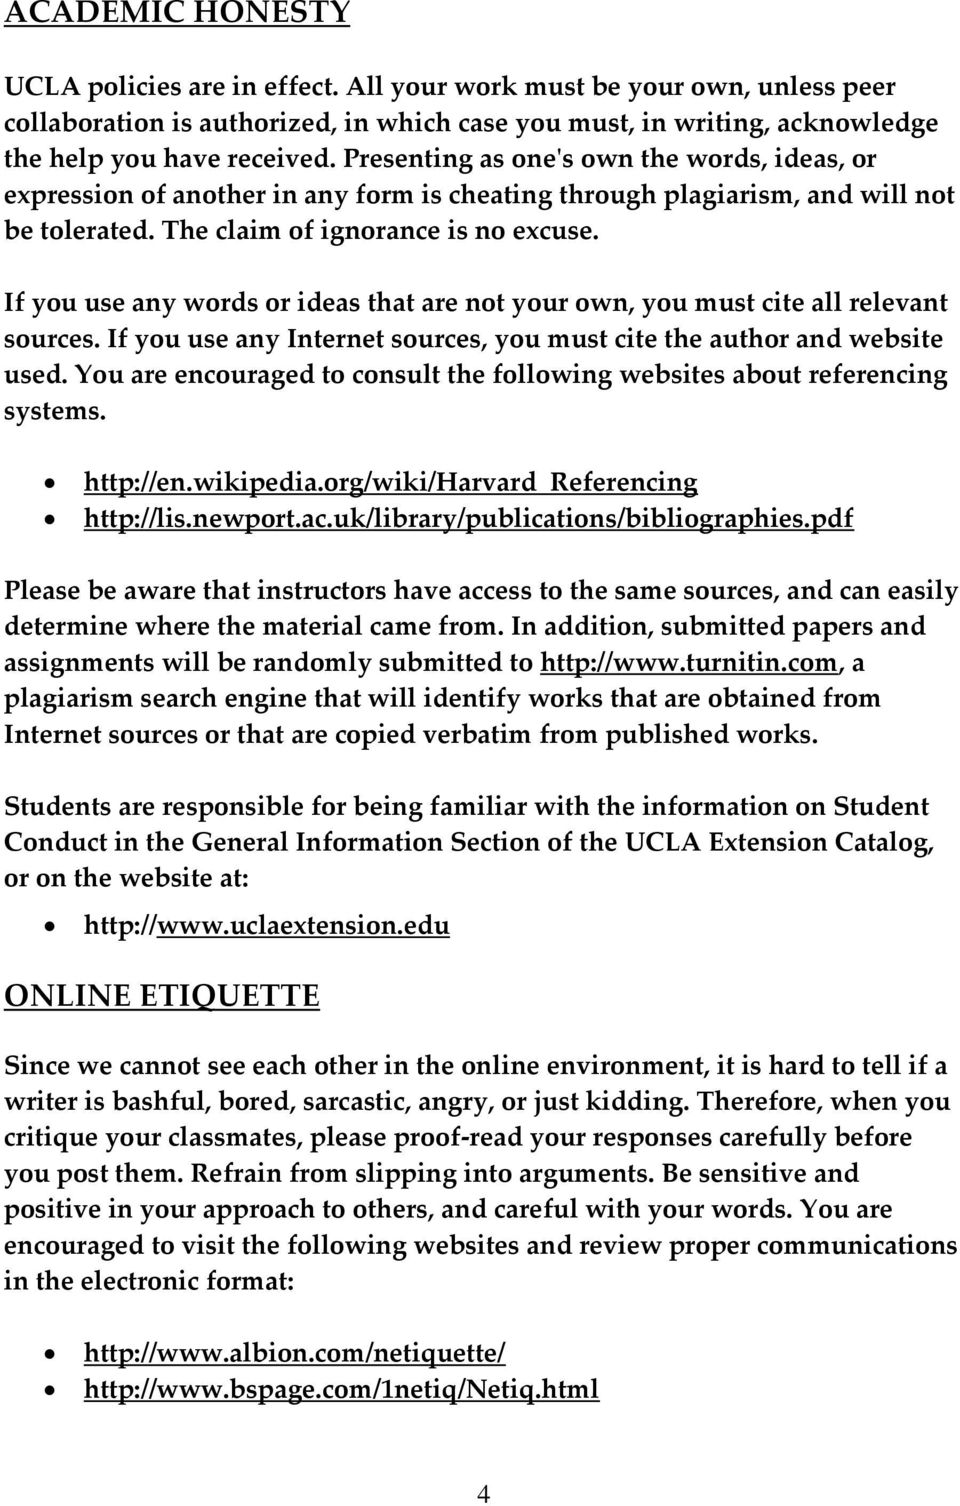 essay environment protect clean best american essays